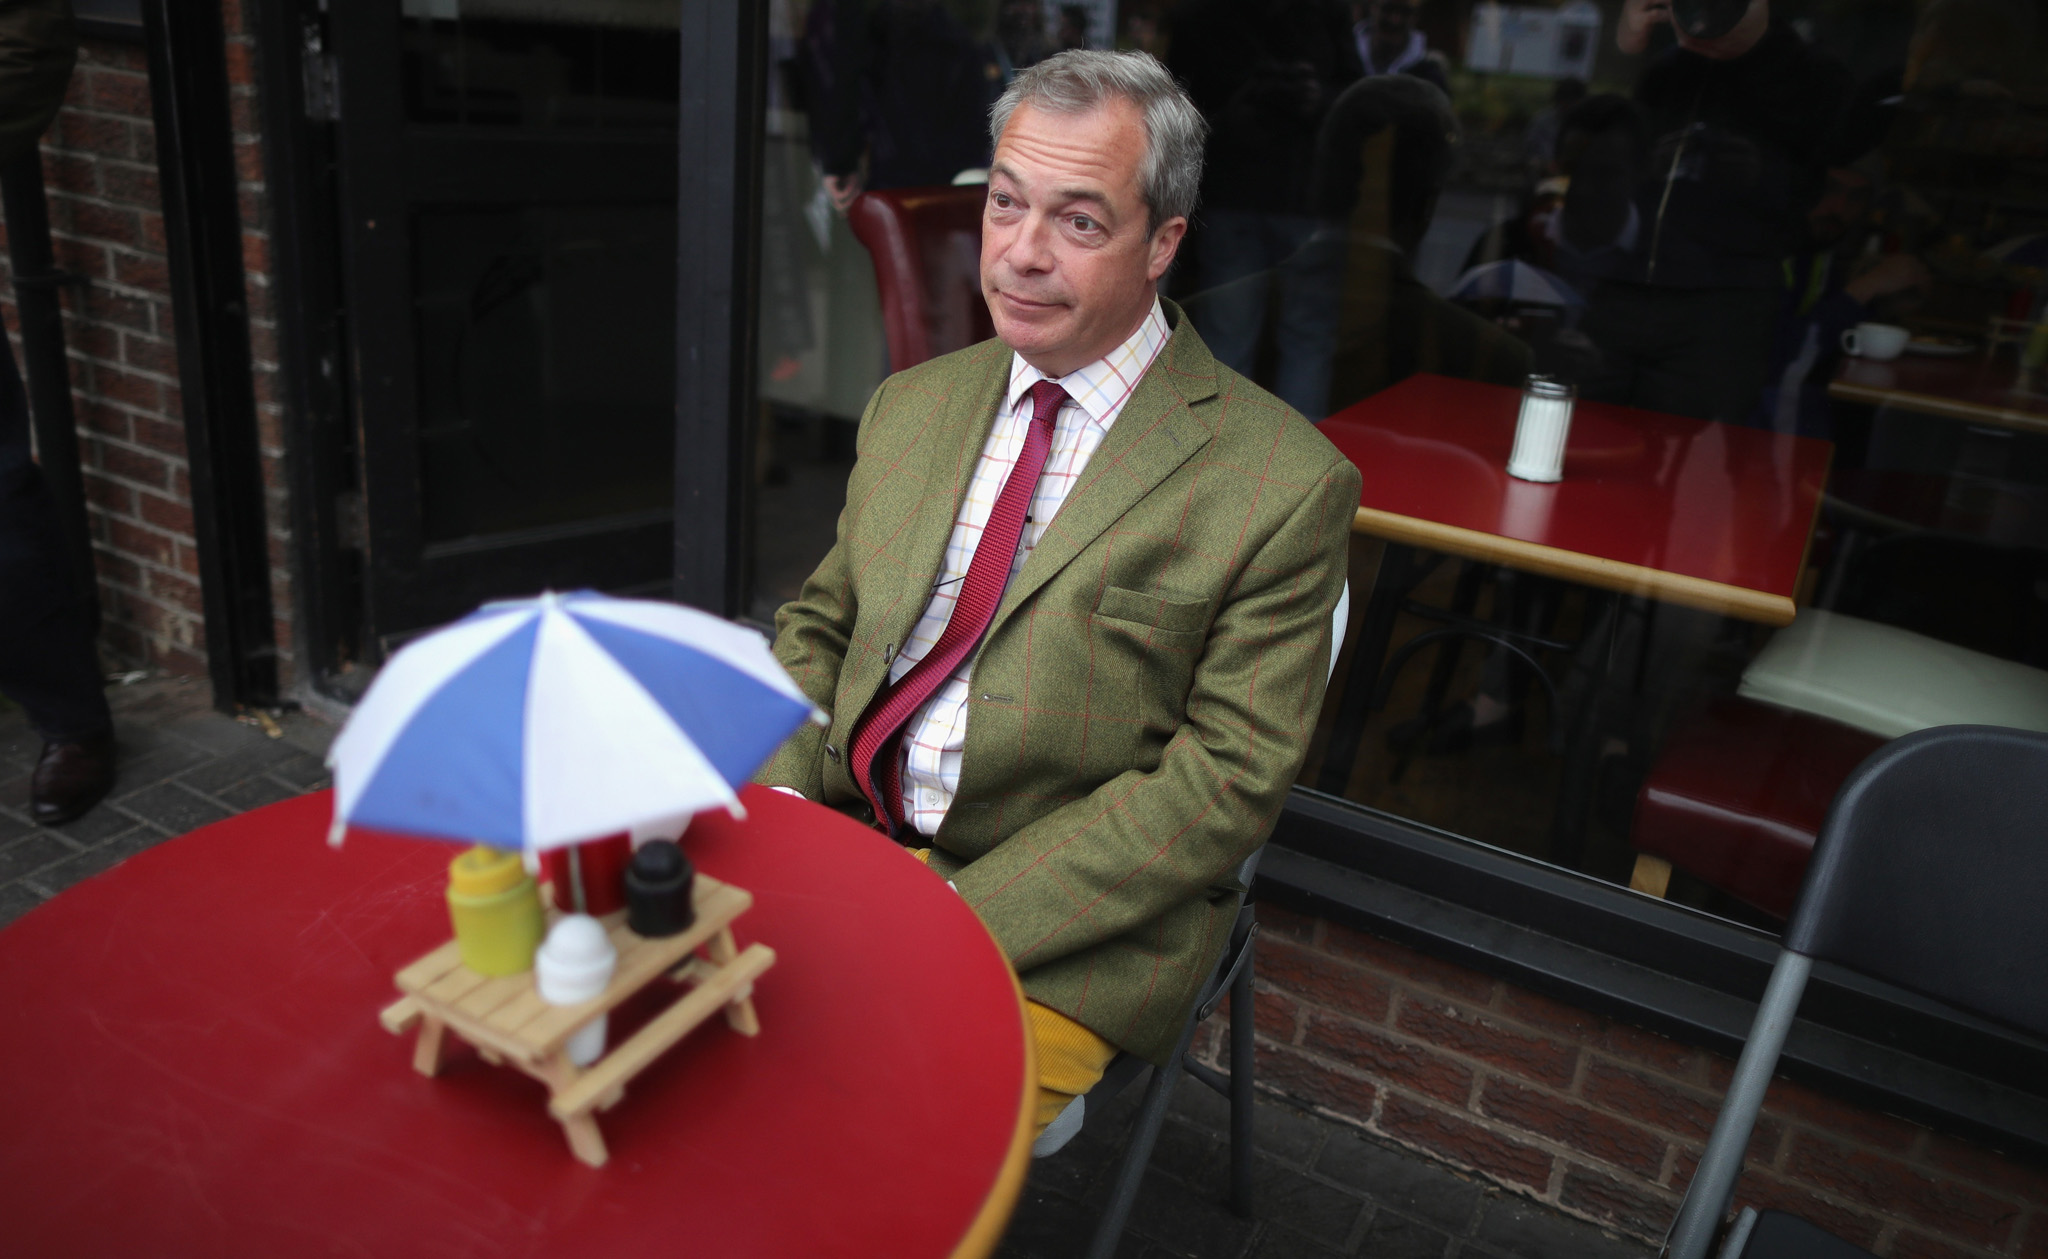 Leader of the United Kingdom Independence Party (UKIP), Nigel Farage sits outside a cafe waiting for his coffee during campaigning for votes to leave the European Union on May 25, 2016 near Sheffield, England